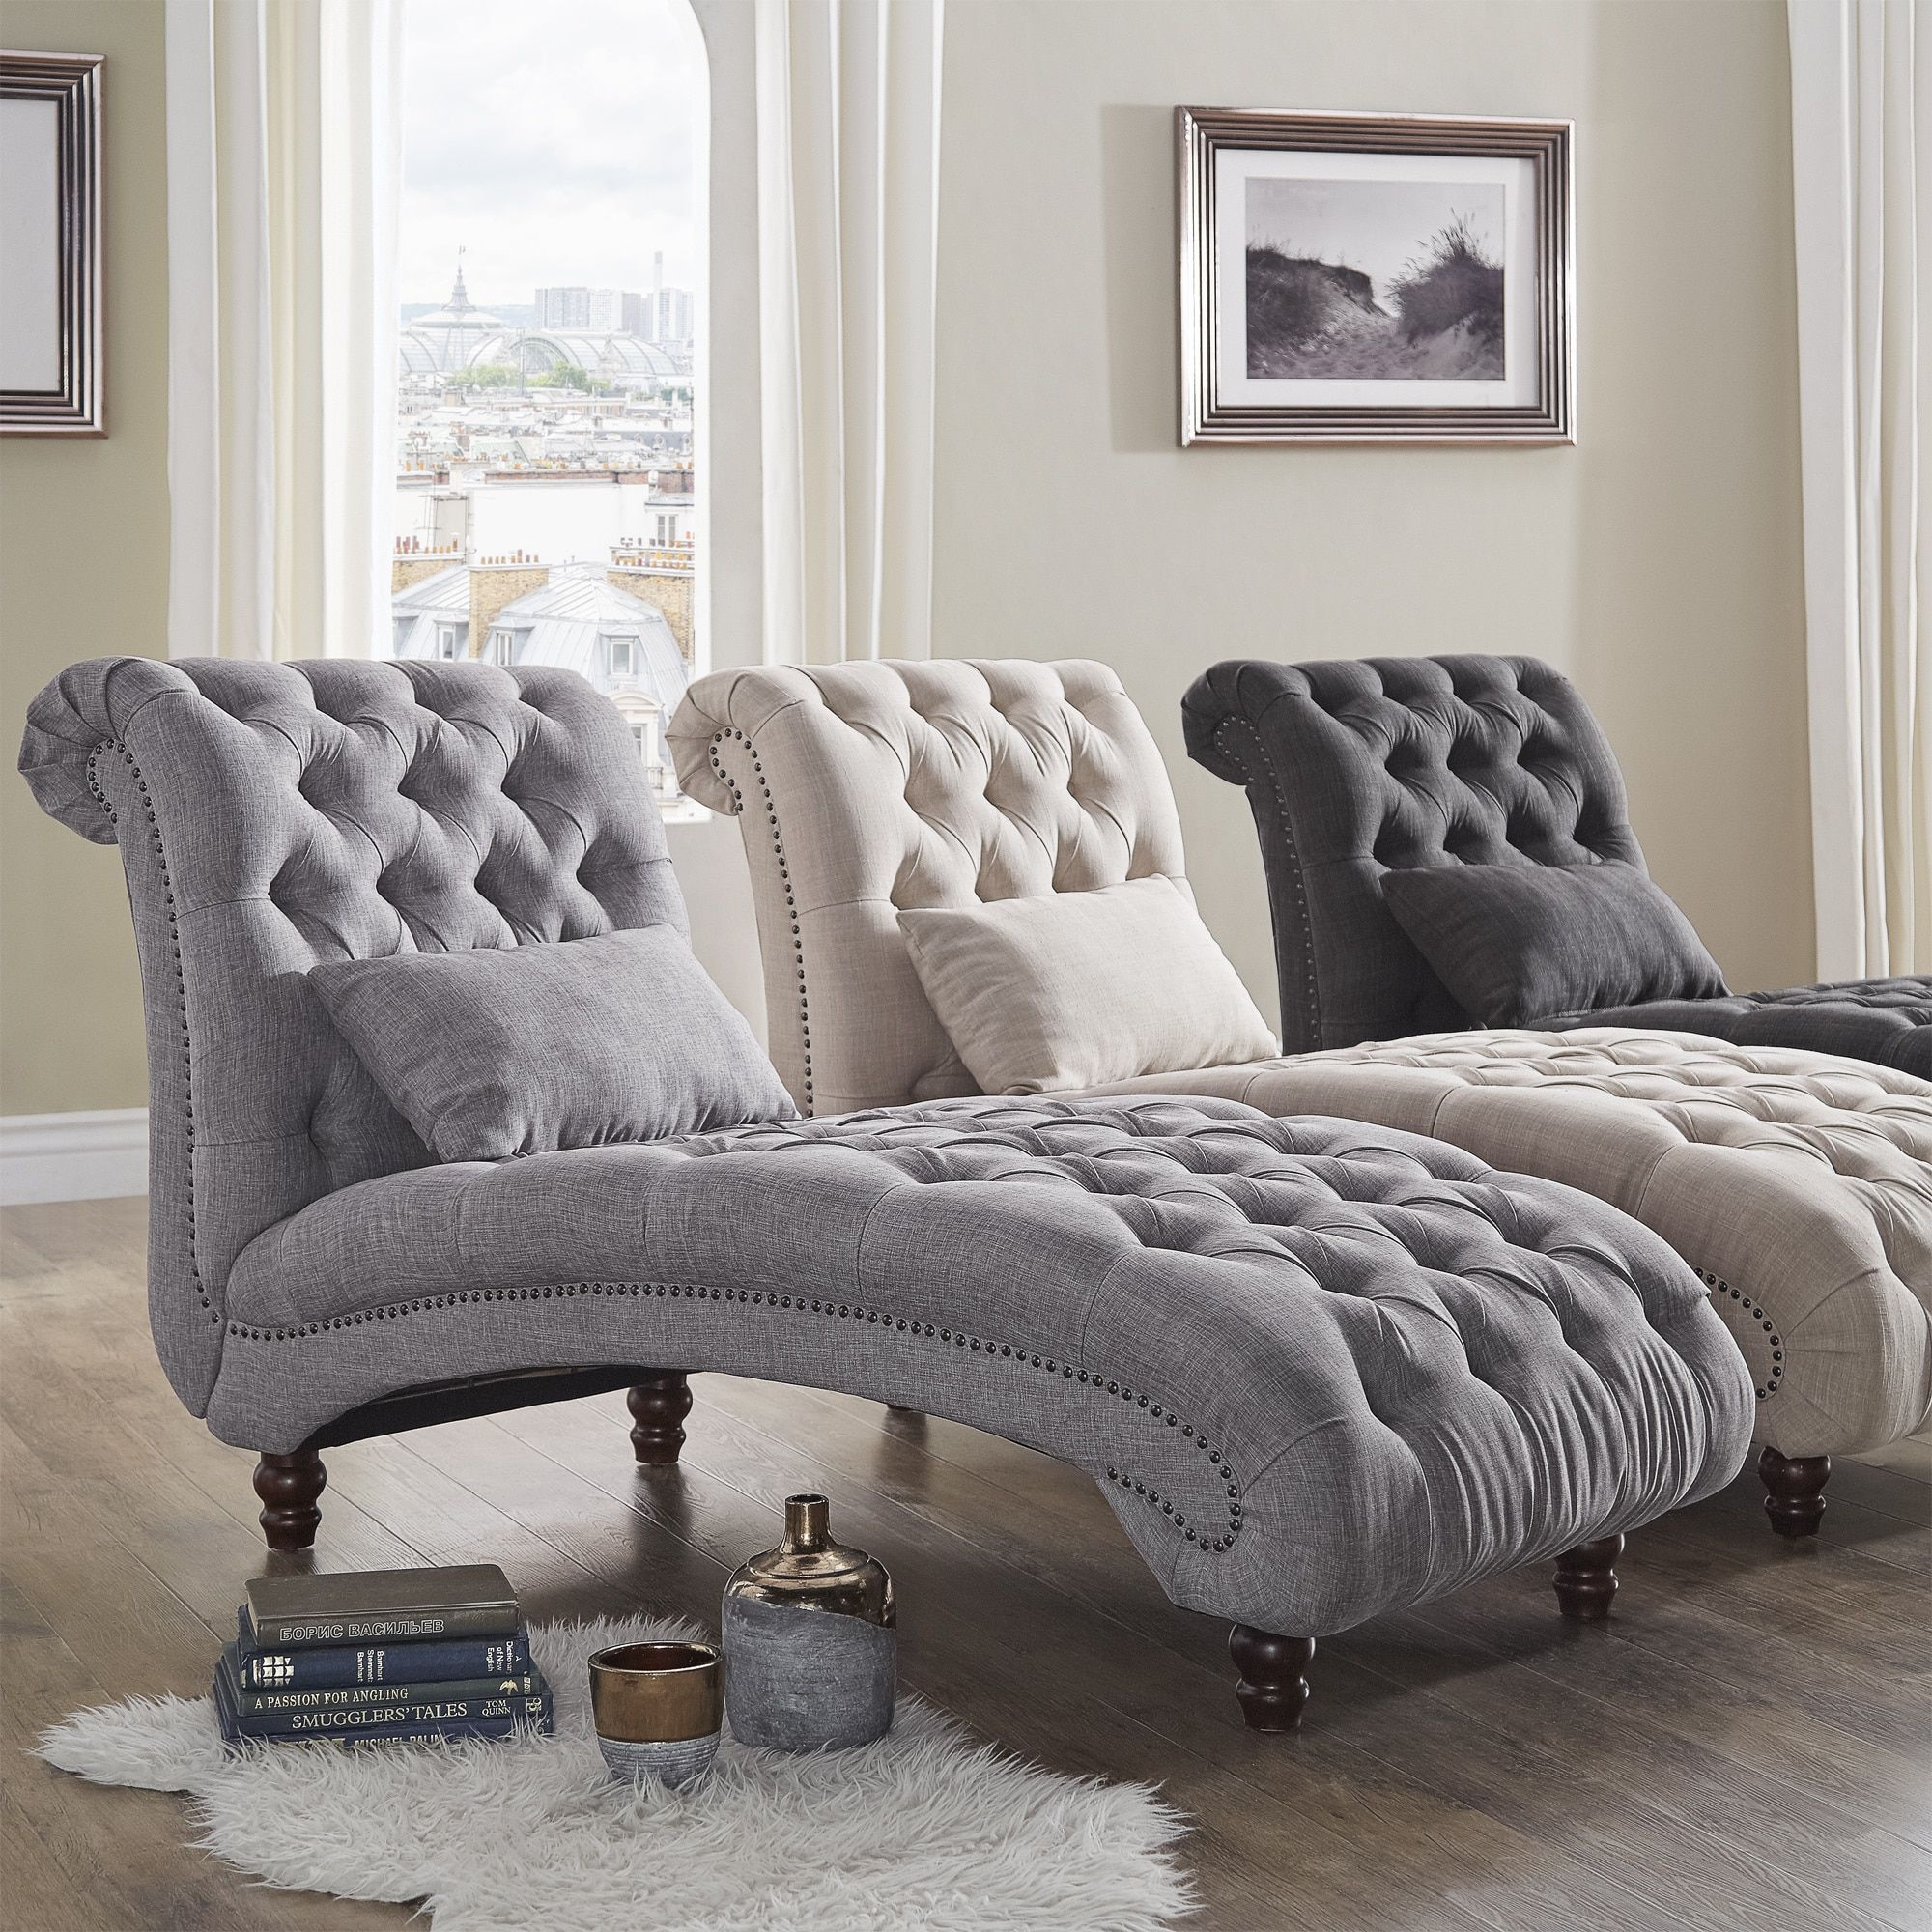 Knightsbridge Tufted Oversized Chaise Lounge By Inspire Q Artisan Oversized Chaise Lounge Living Room Chairs Furniture